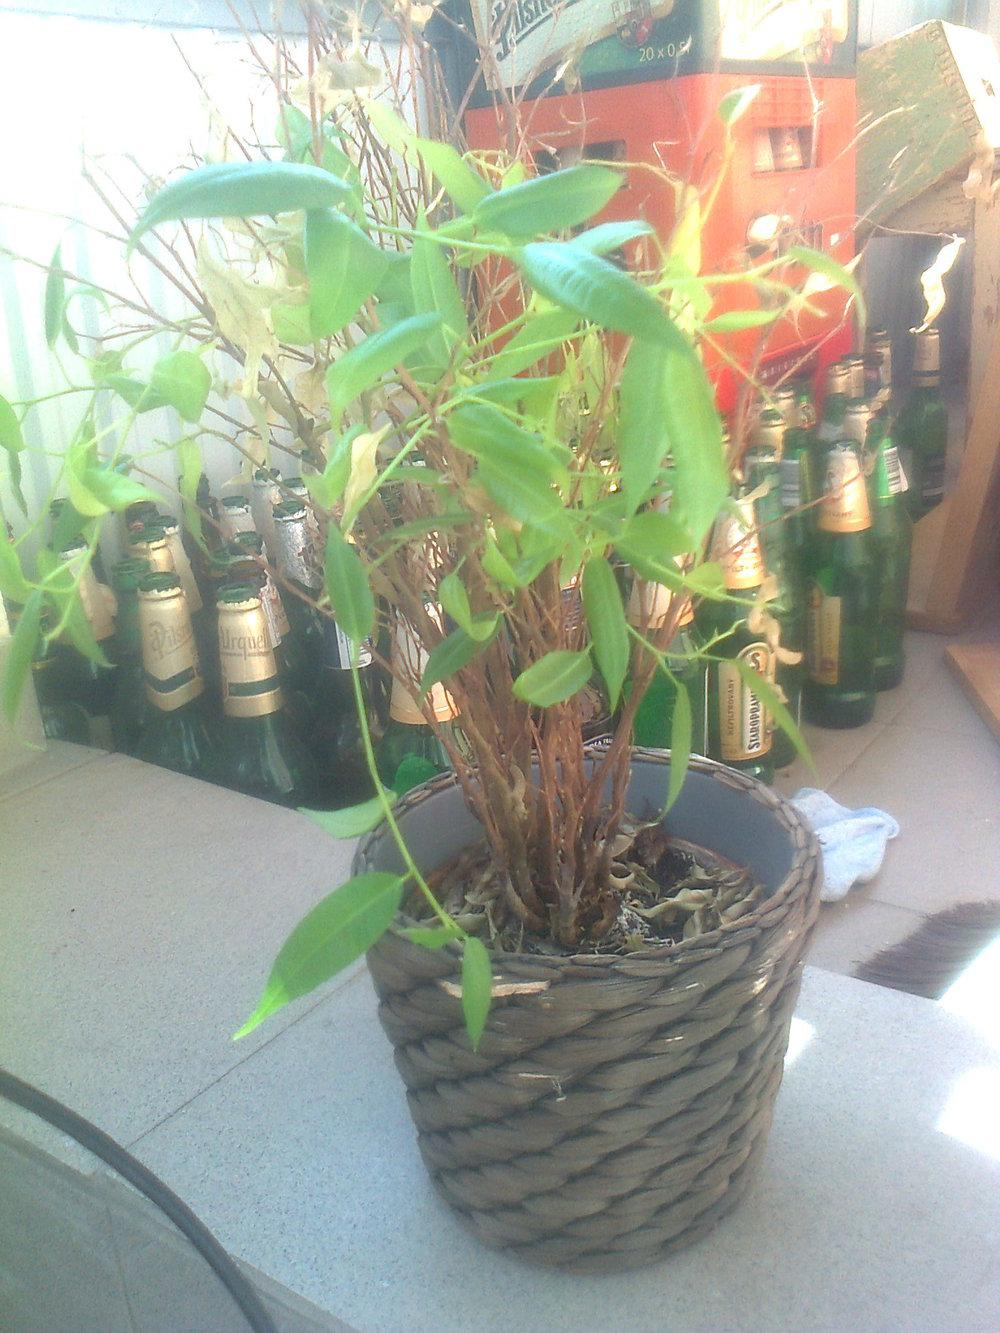 Ask a Question forum Help me save this plant Gardenorg